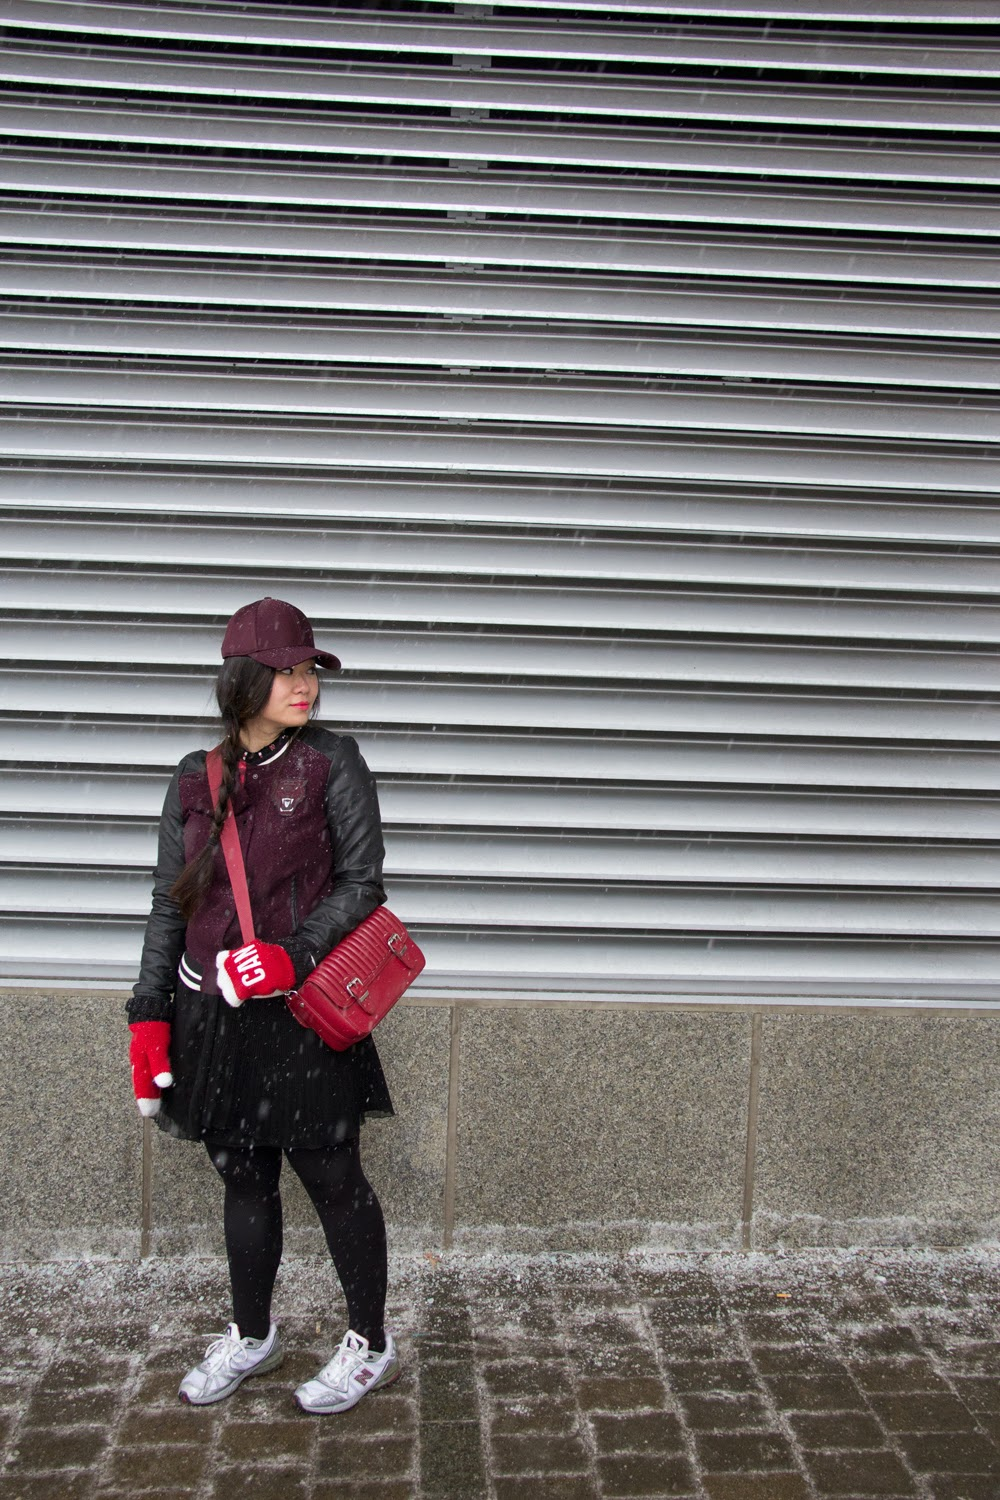 Winter-Outfit, Baseball-Cap, Varsity-Jacket, Zara-Boxy-Bag, New-Balance-Sneakers